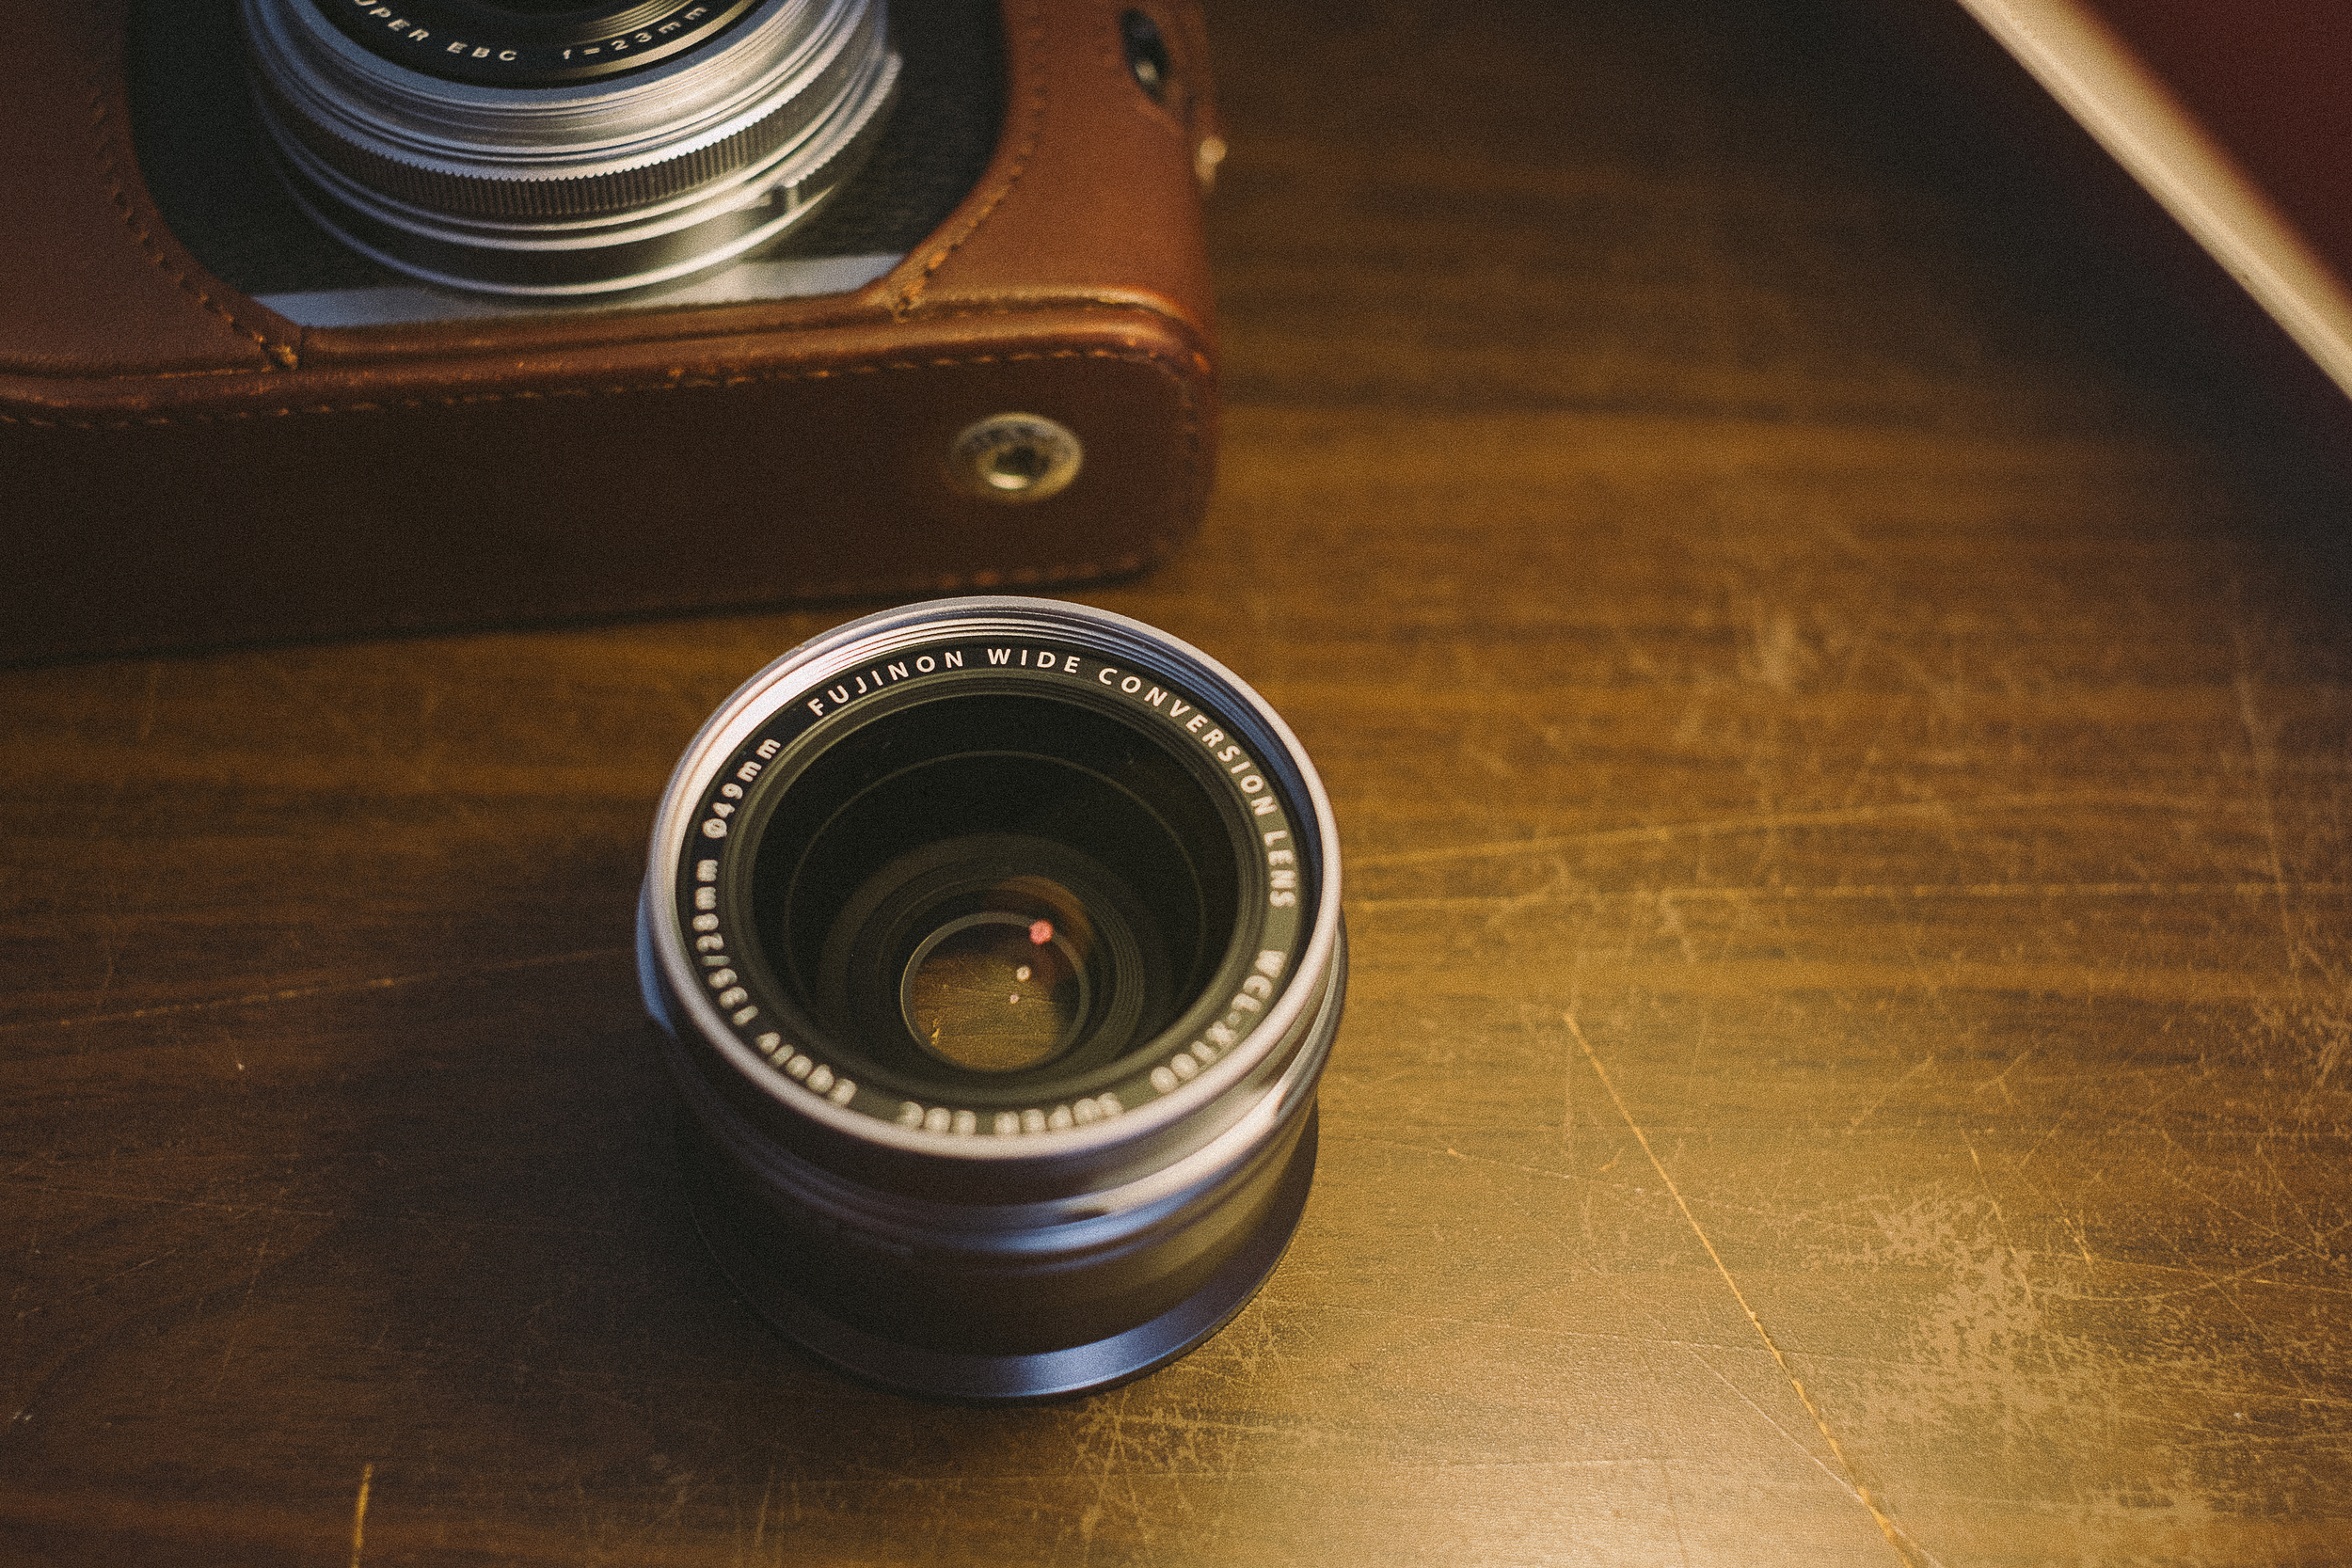 The Fuji X100 Wide Conversion Lens or 'WCL'